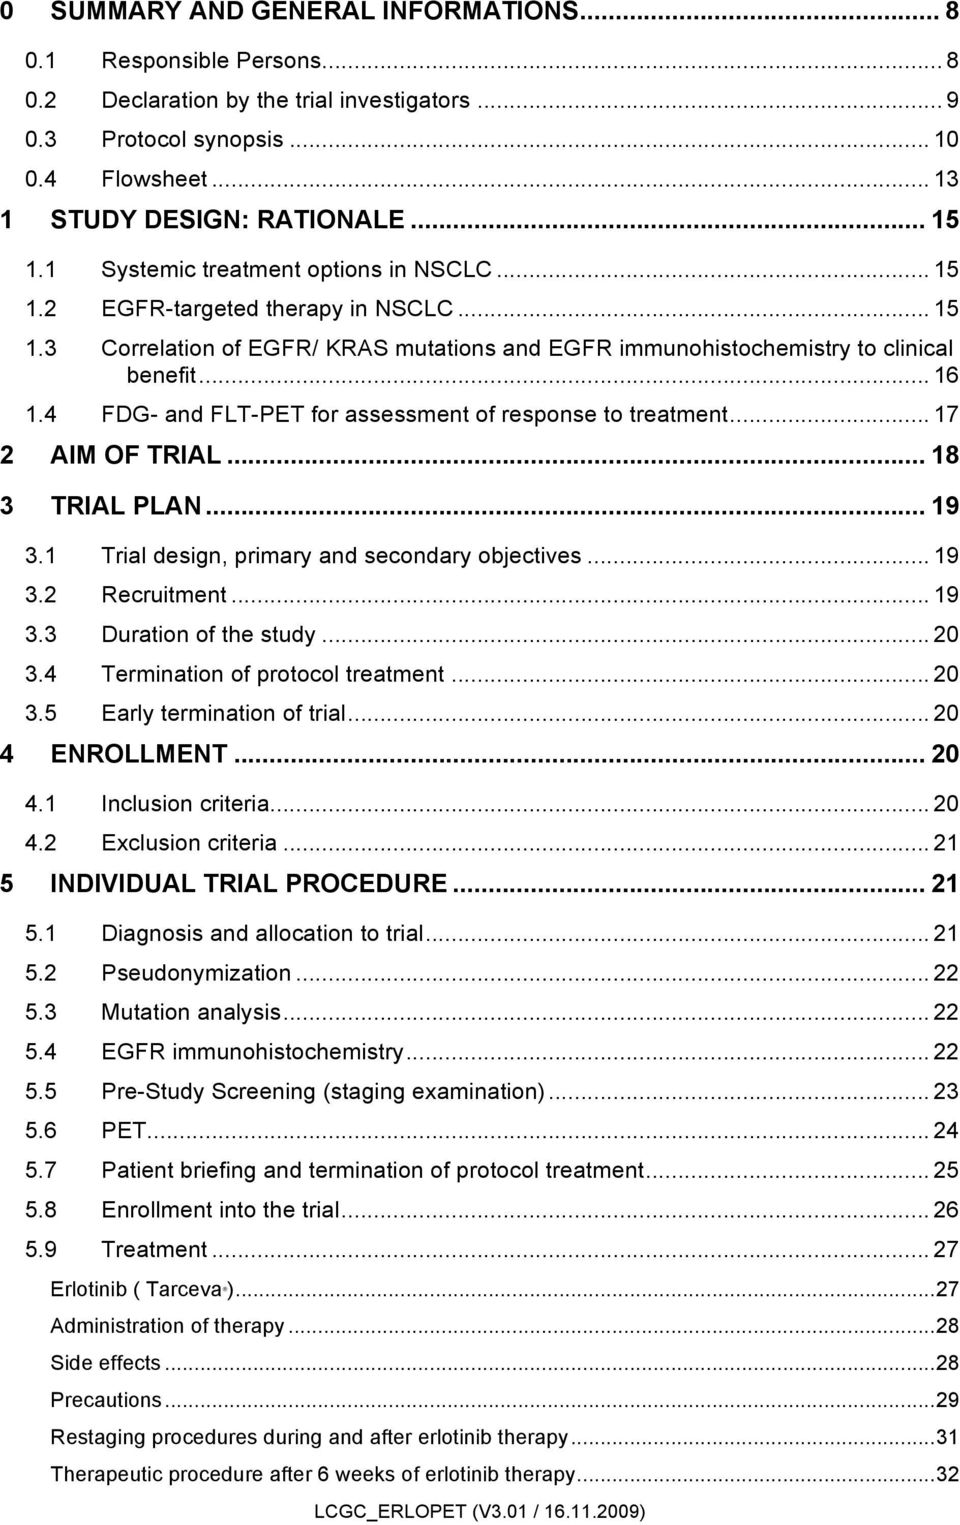 4 FDG- and FLT-PET for assessment of response to treatment... 17 2 AIM OF TRIAL... 18 3 TRIAL PLAN... 19 3.1 Trial design, primary and secondary objectives... 19 3.2 Recruitment... 19 3.3 Duration of the study.